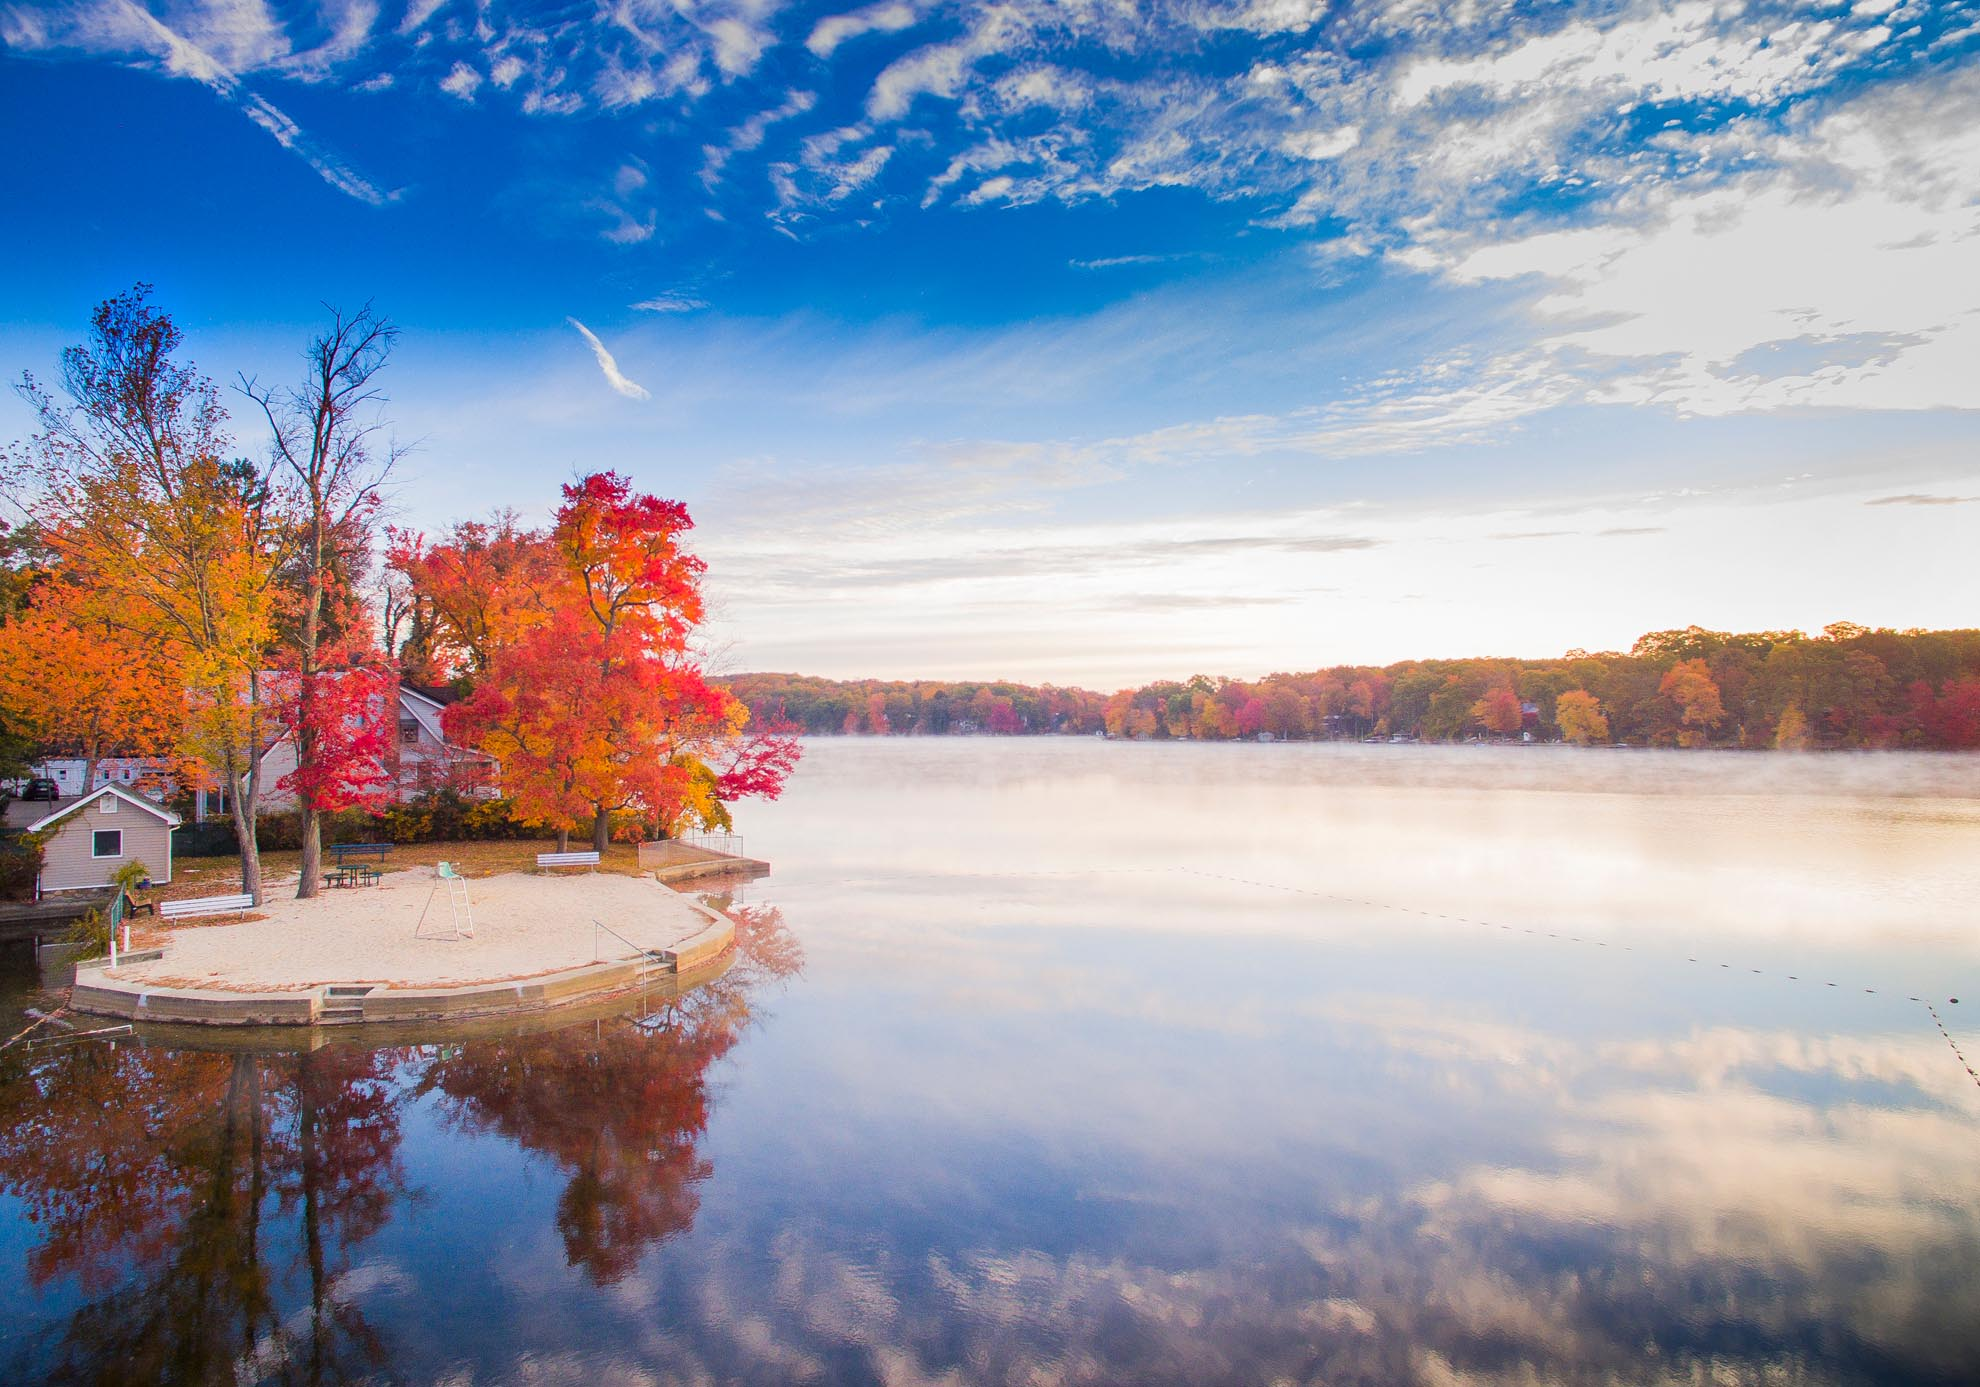 Photograph of Cedar Lake NJ in Autumn with morning fog taken from a drone